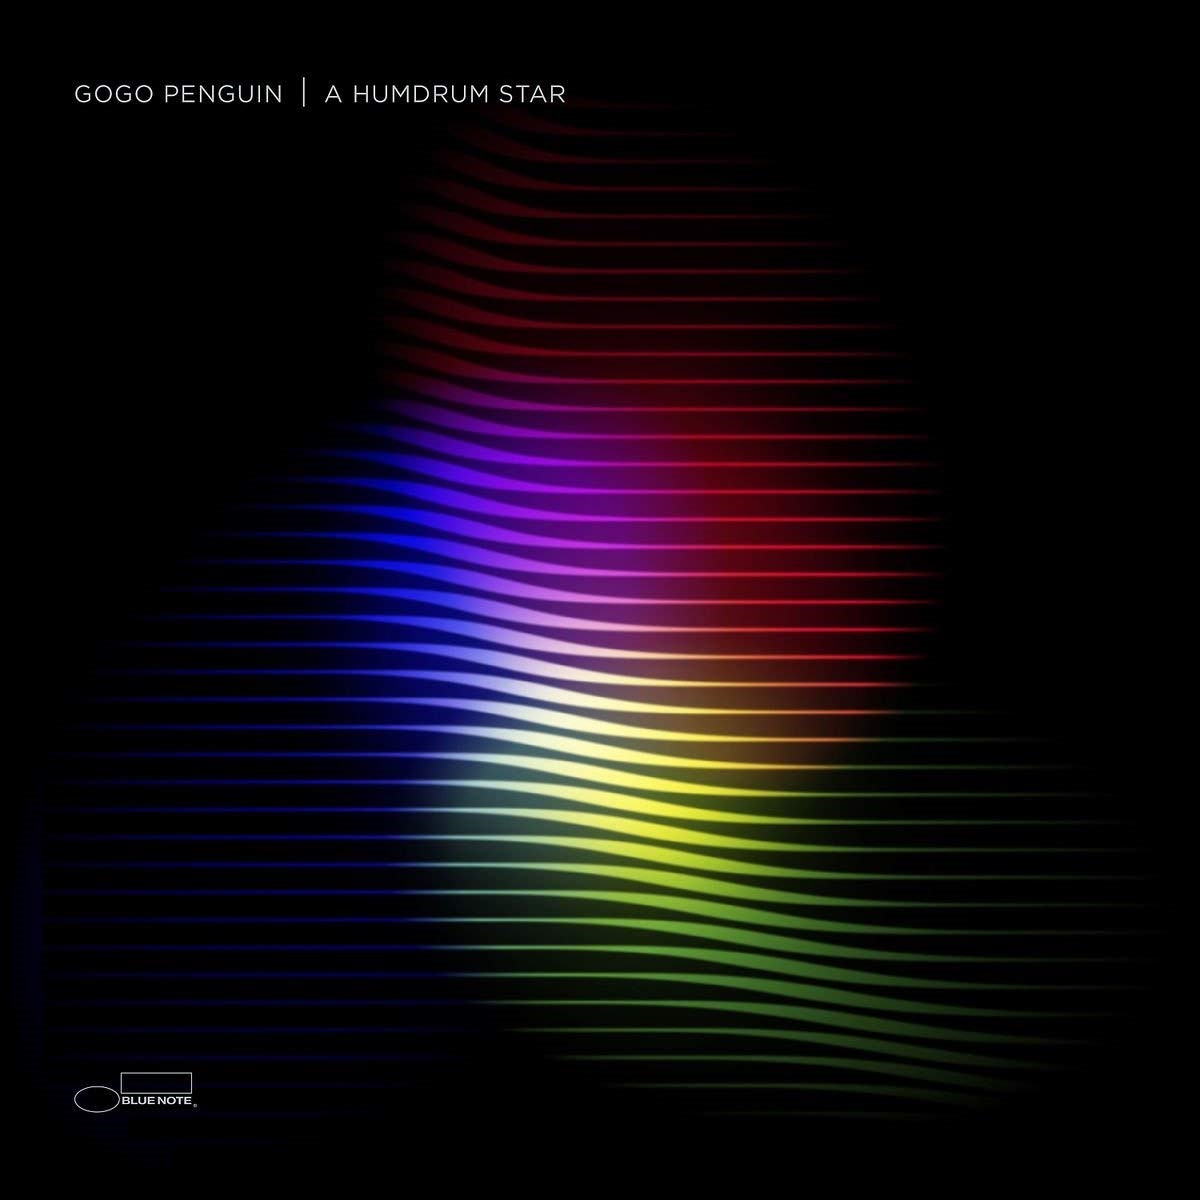 GoGo Penguin - A Hundrum Star